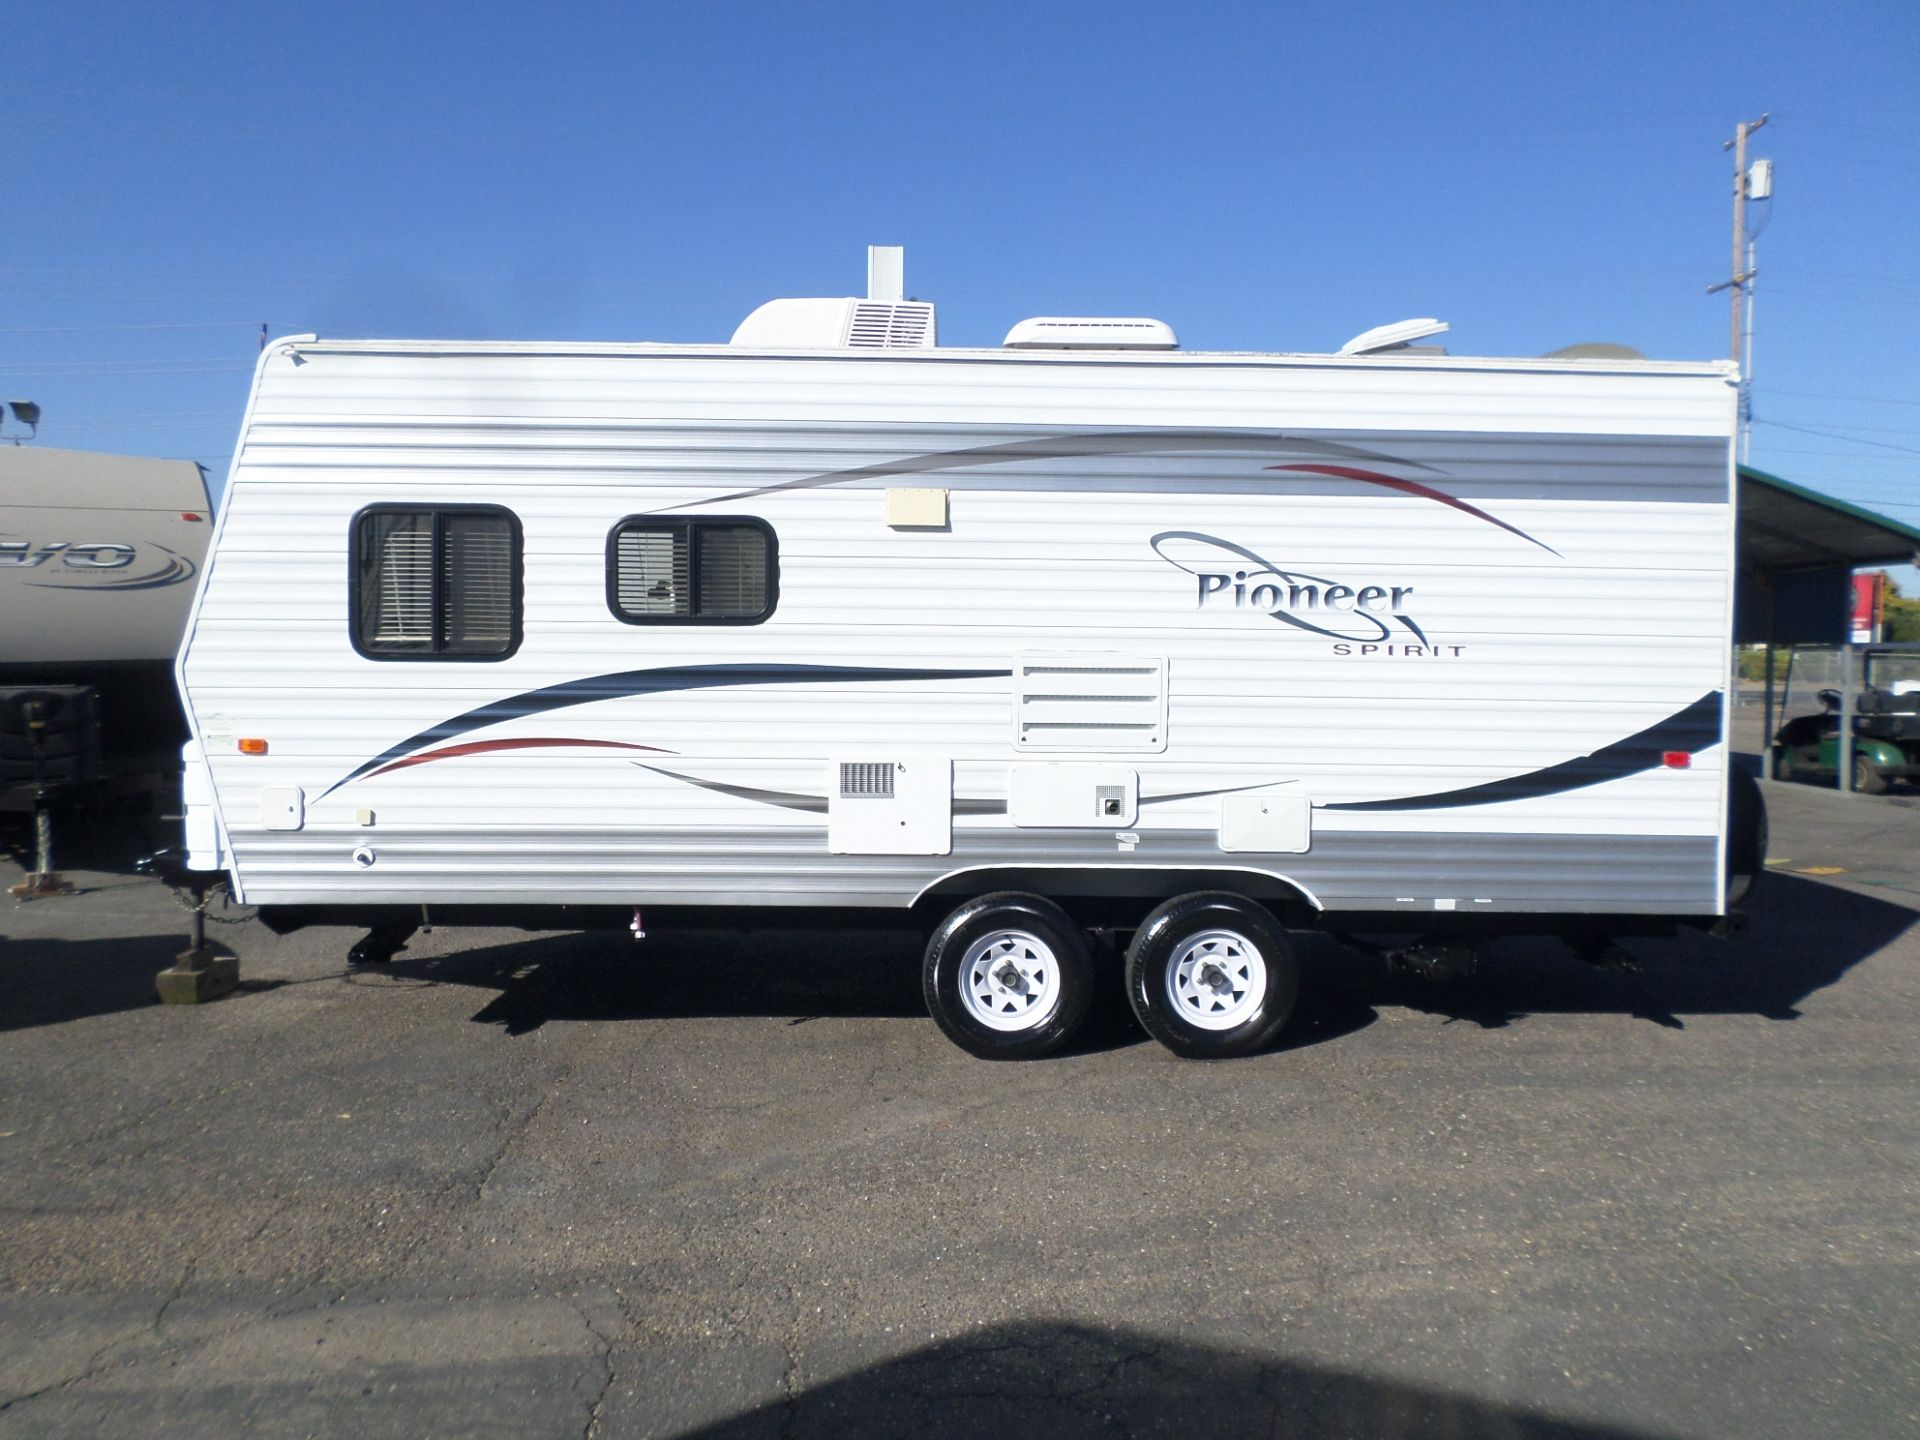 Pin on RVs, Motorhomes, Trailers and Campers